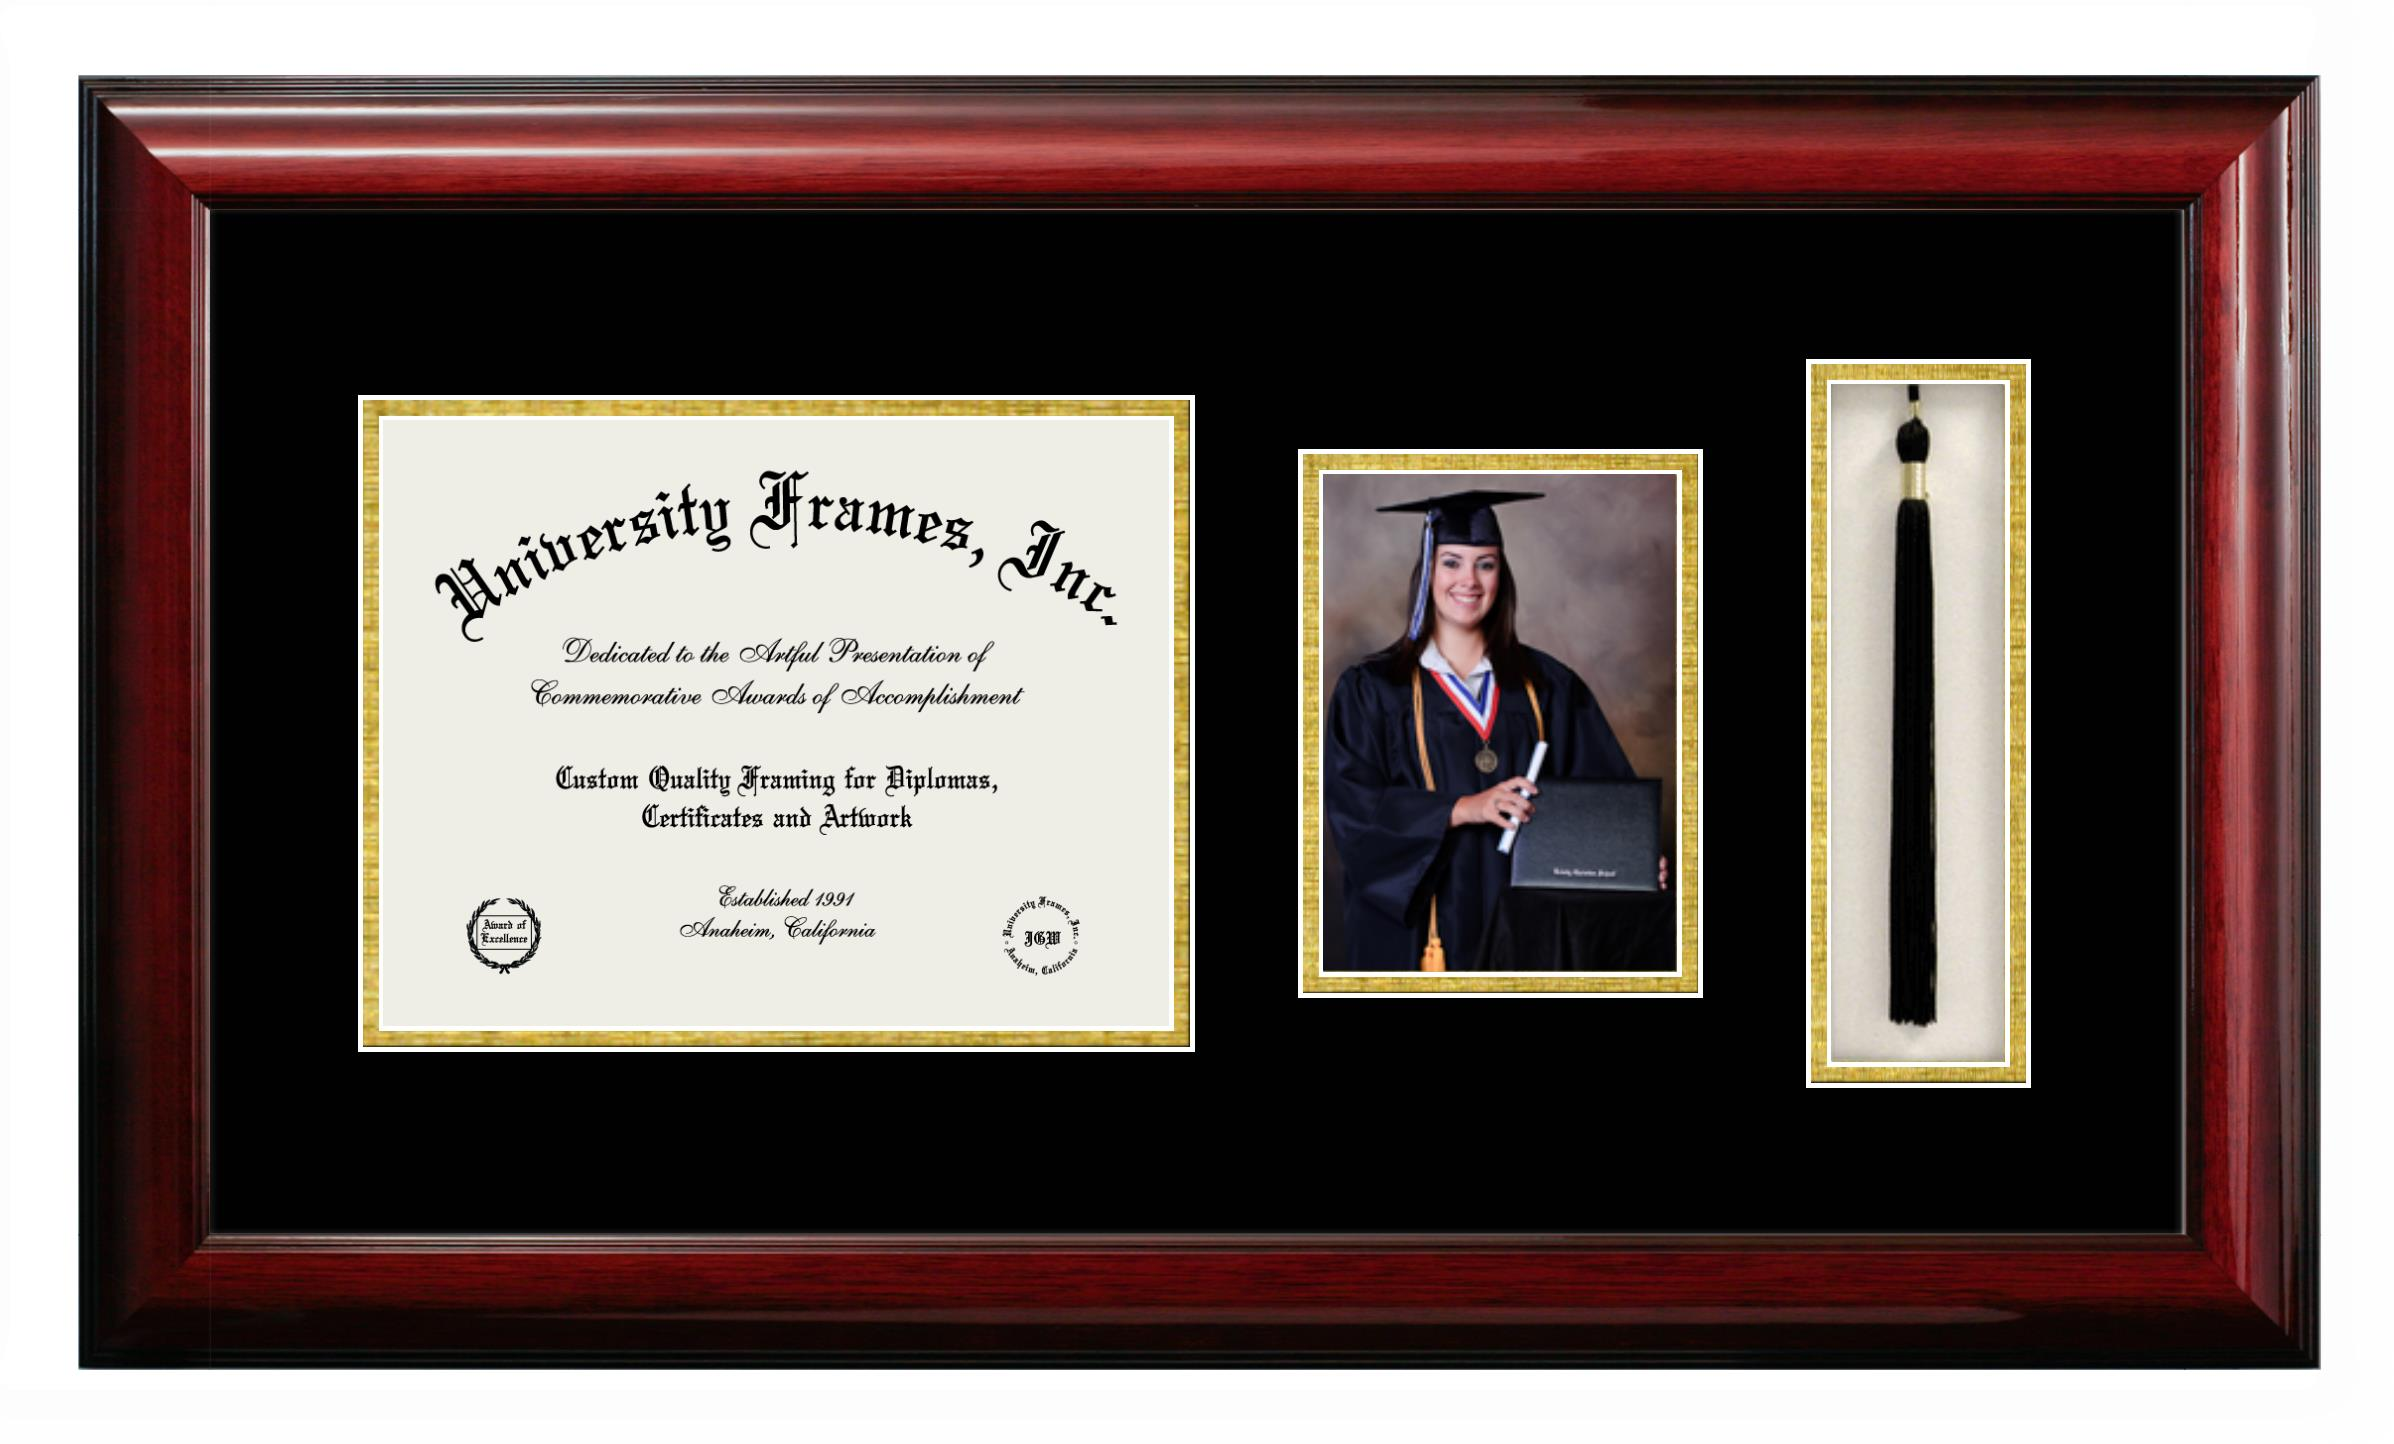 Unimprinted Mat Diploma with 5 x 7 Portrait & Tassel Box Frame in Classic Mahogany with Black & Gold Mats